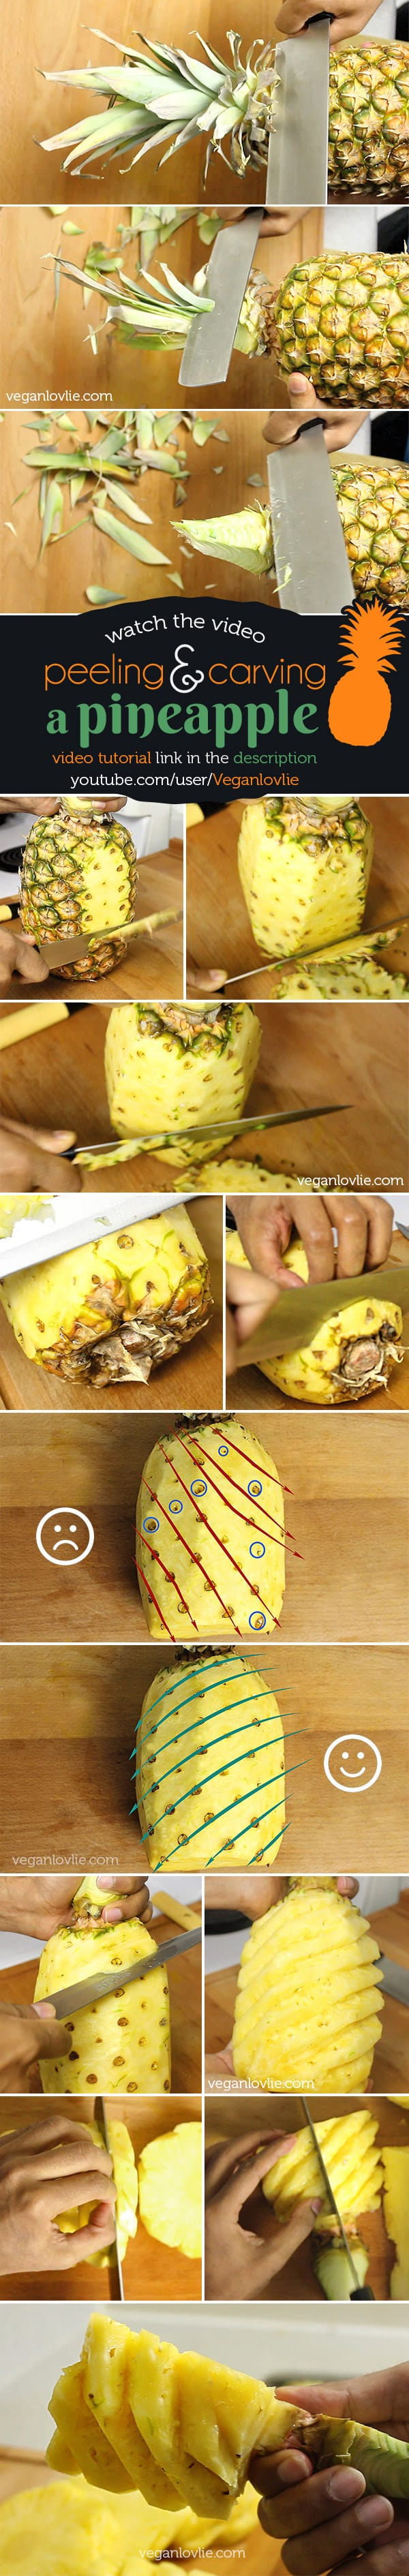 how to peel and carve a pineapple, Mauritian style